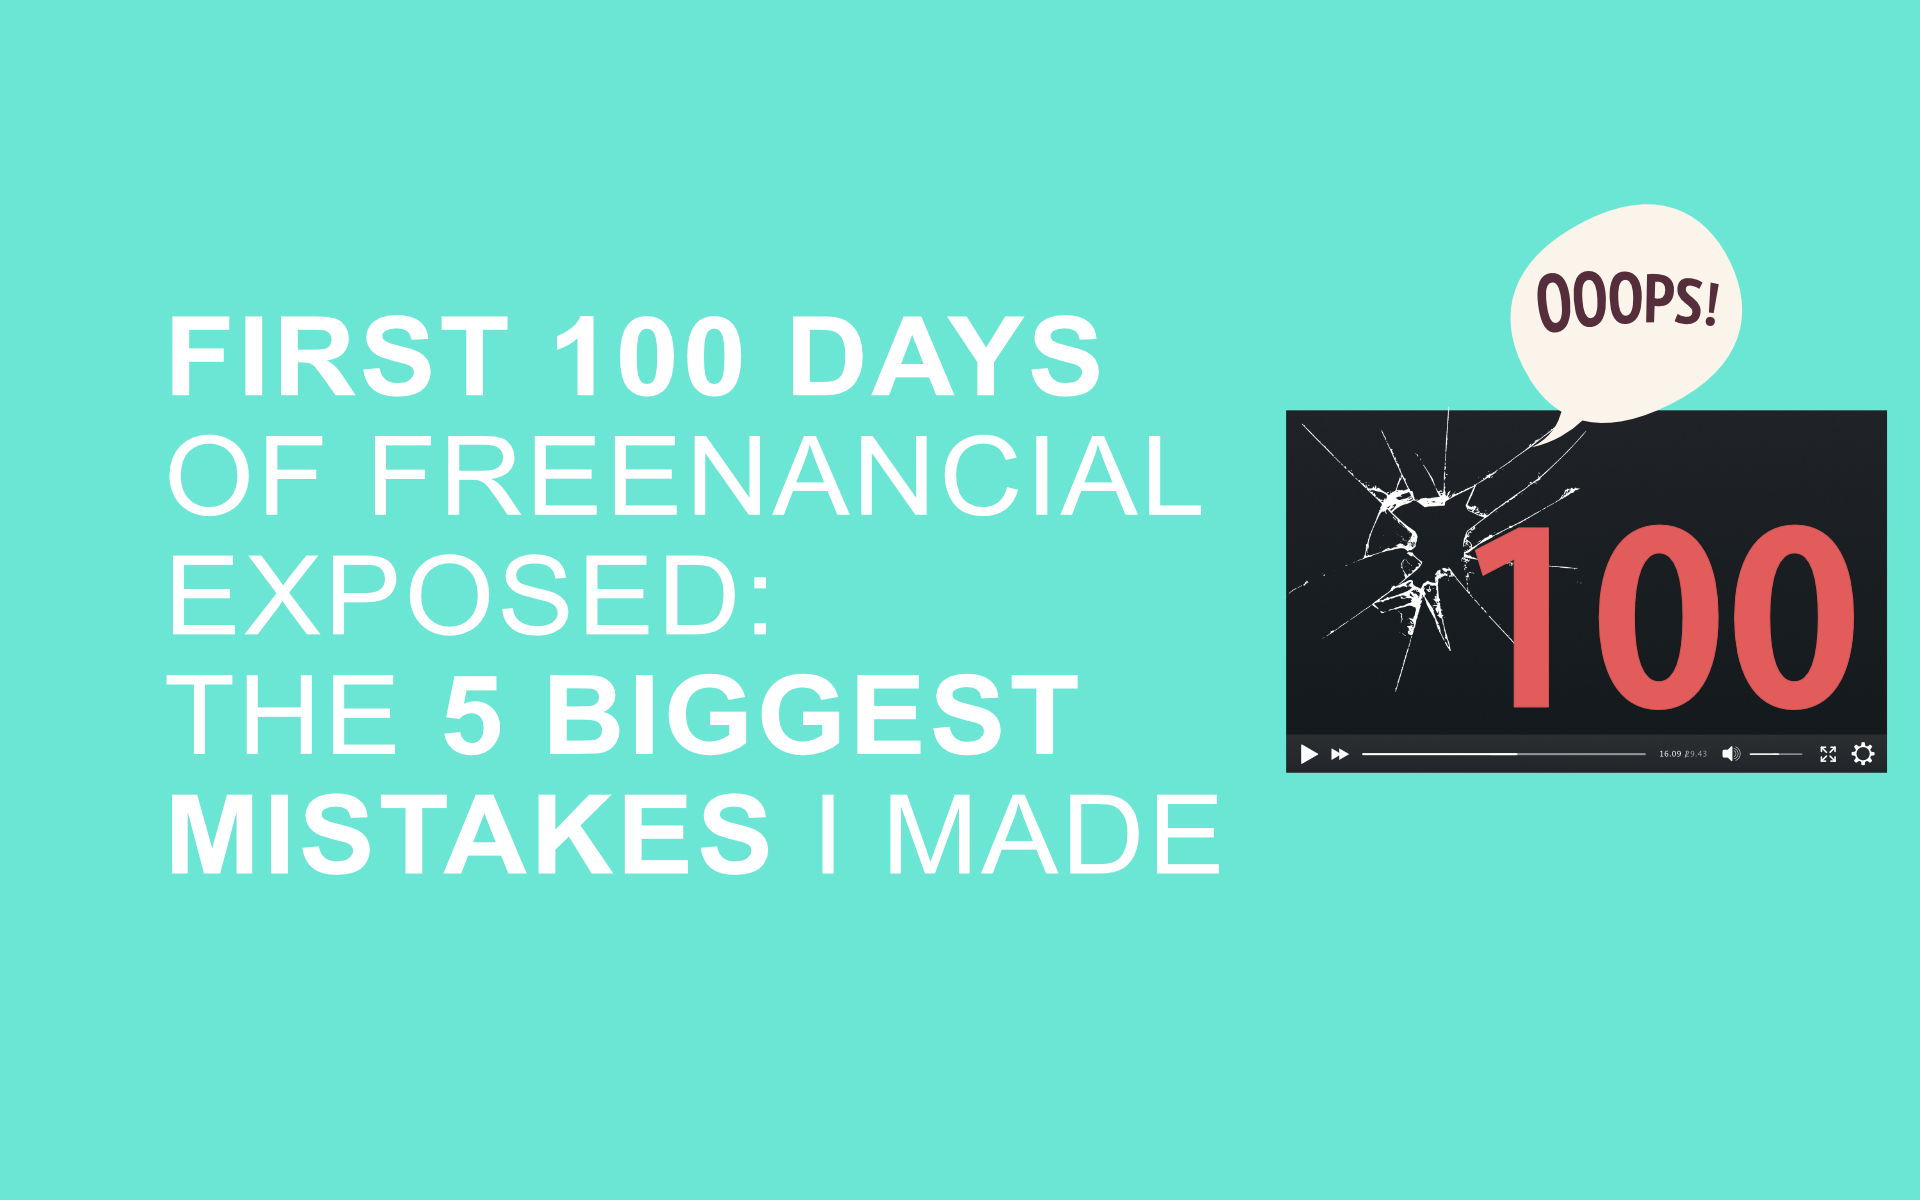 First 100 days of Freenancial Exposed. The 5 biggest mistakes I made